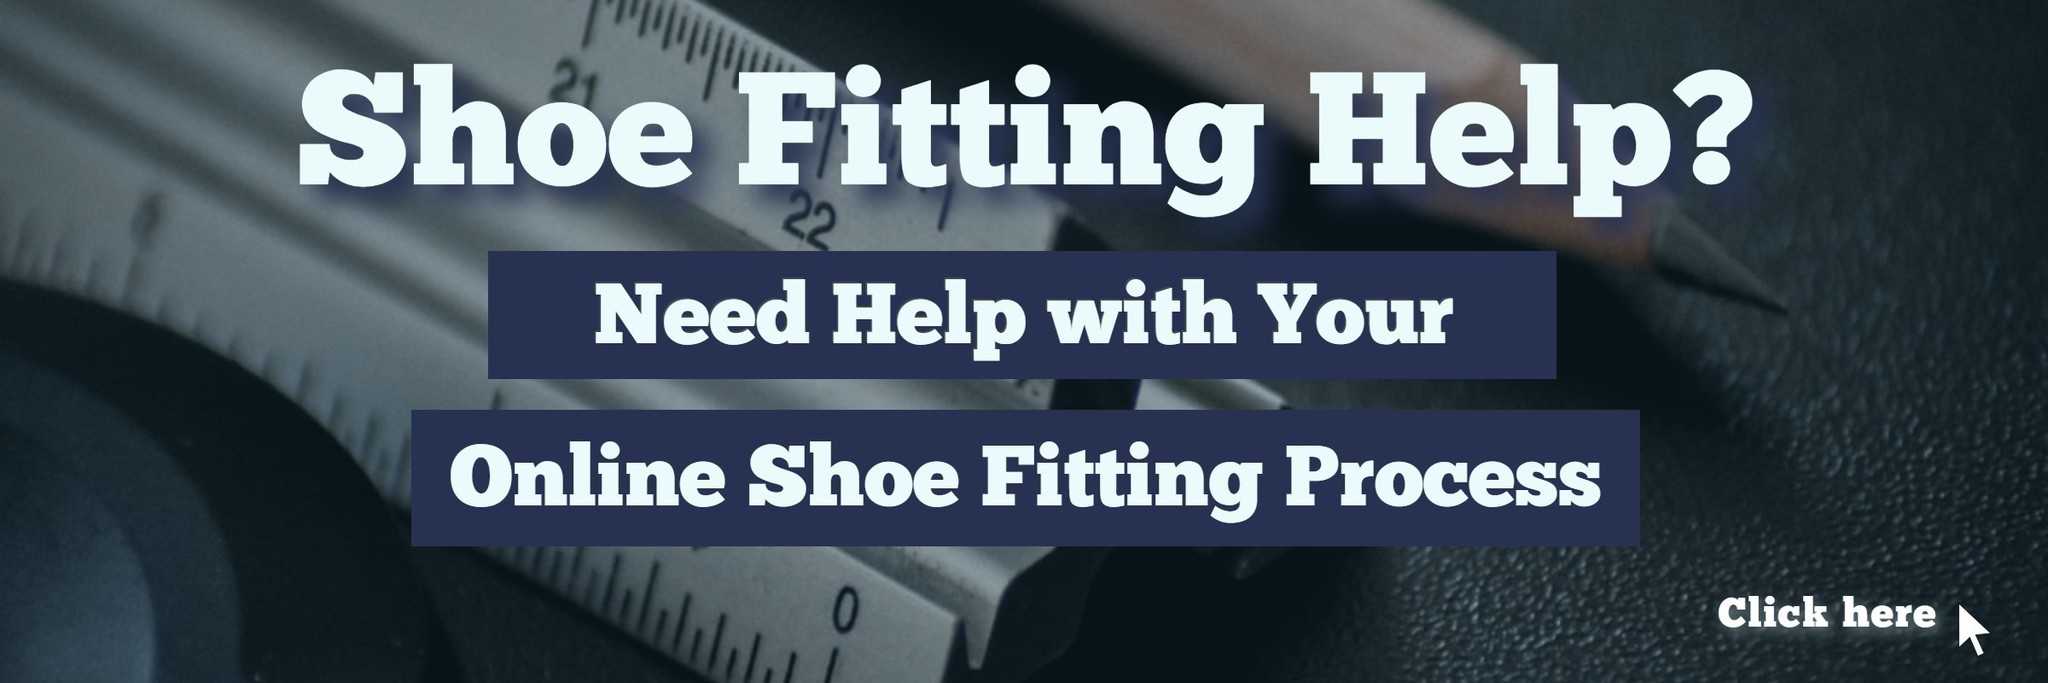 Shoe Fitting Help